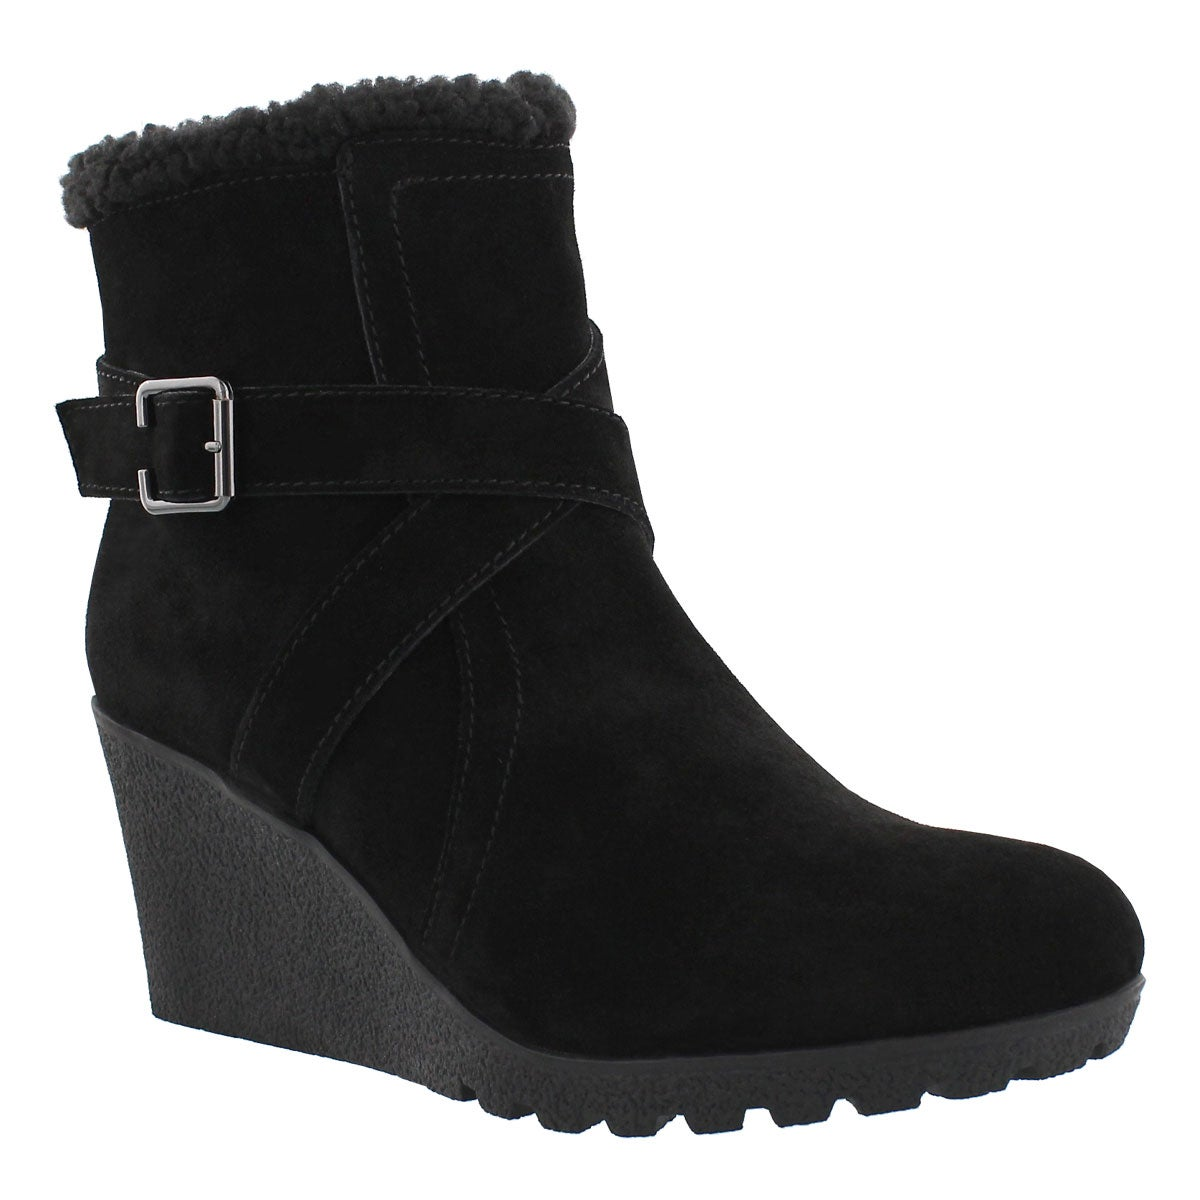 Women's AMBER MILES IIV blk waterproof wdg booties